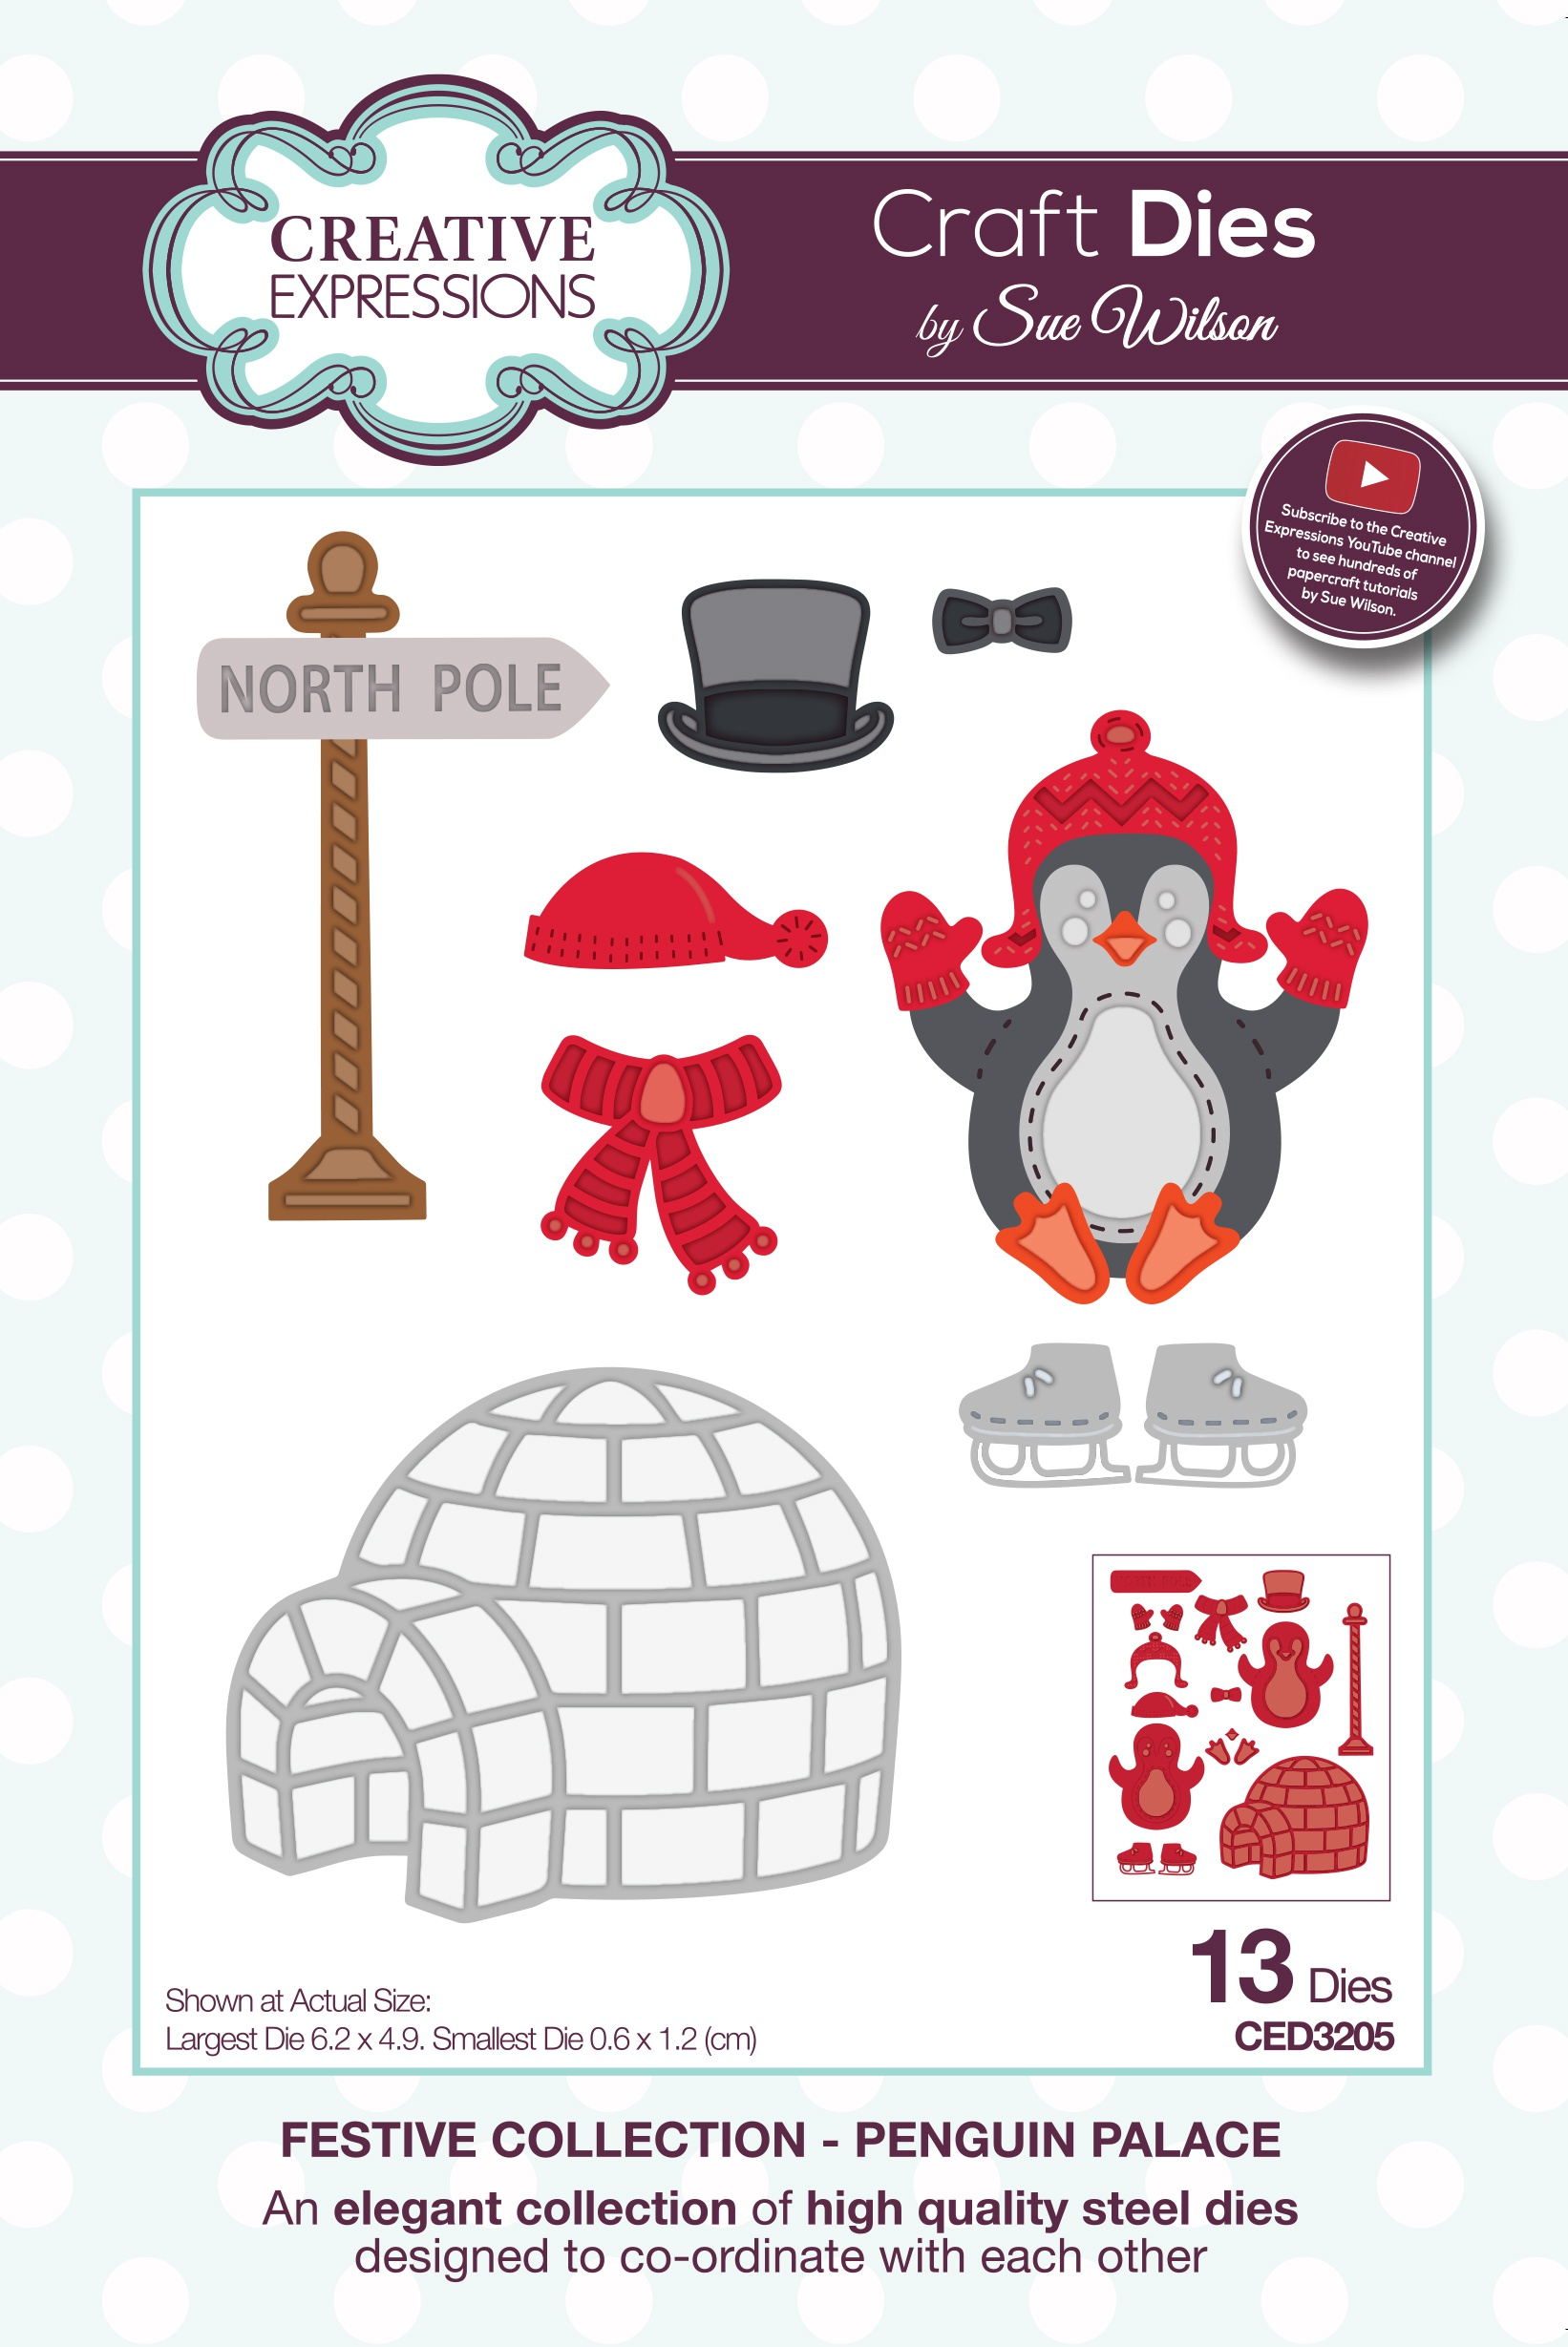 Creative Expressions Craft Dies By Sue Wilson-Penguin Palace